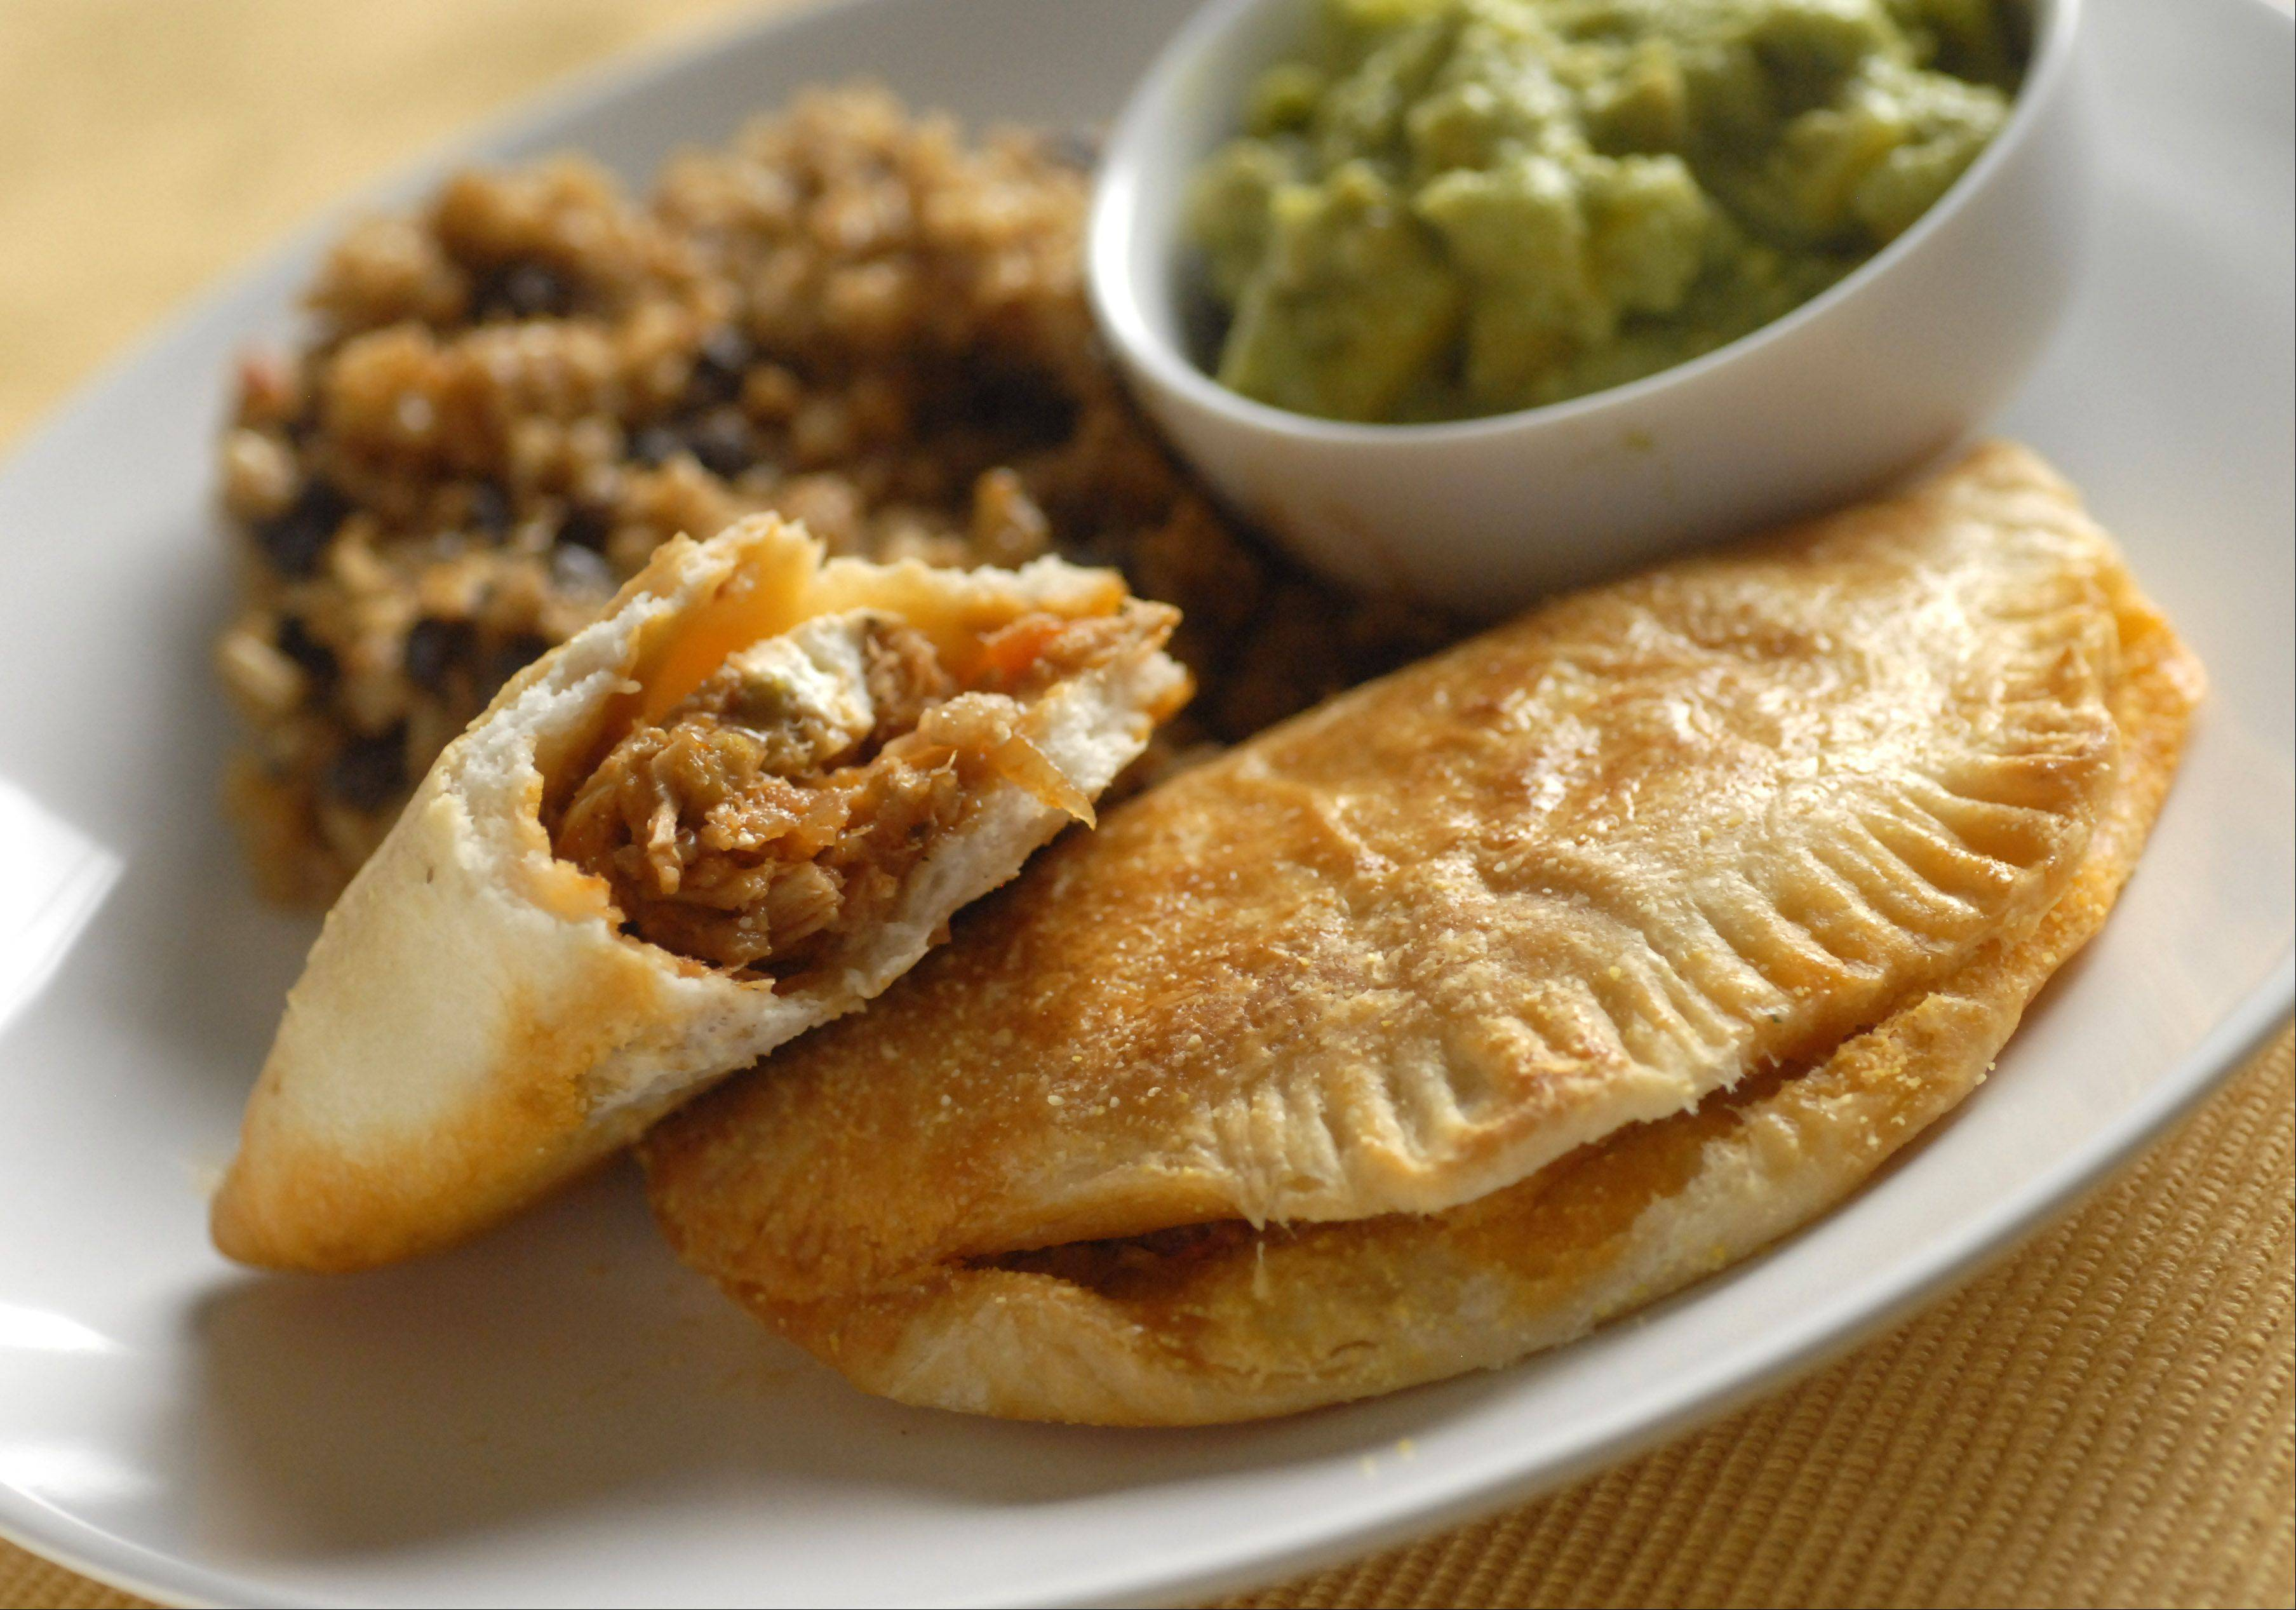 Saucy Tuna Empanadas with Cuban Black Beans and Mango Guacamole